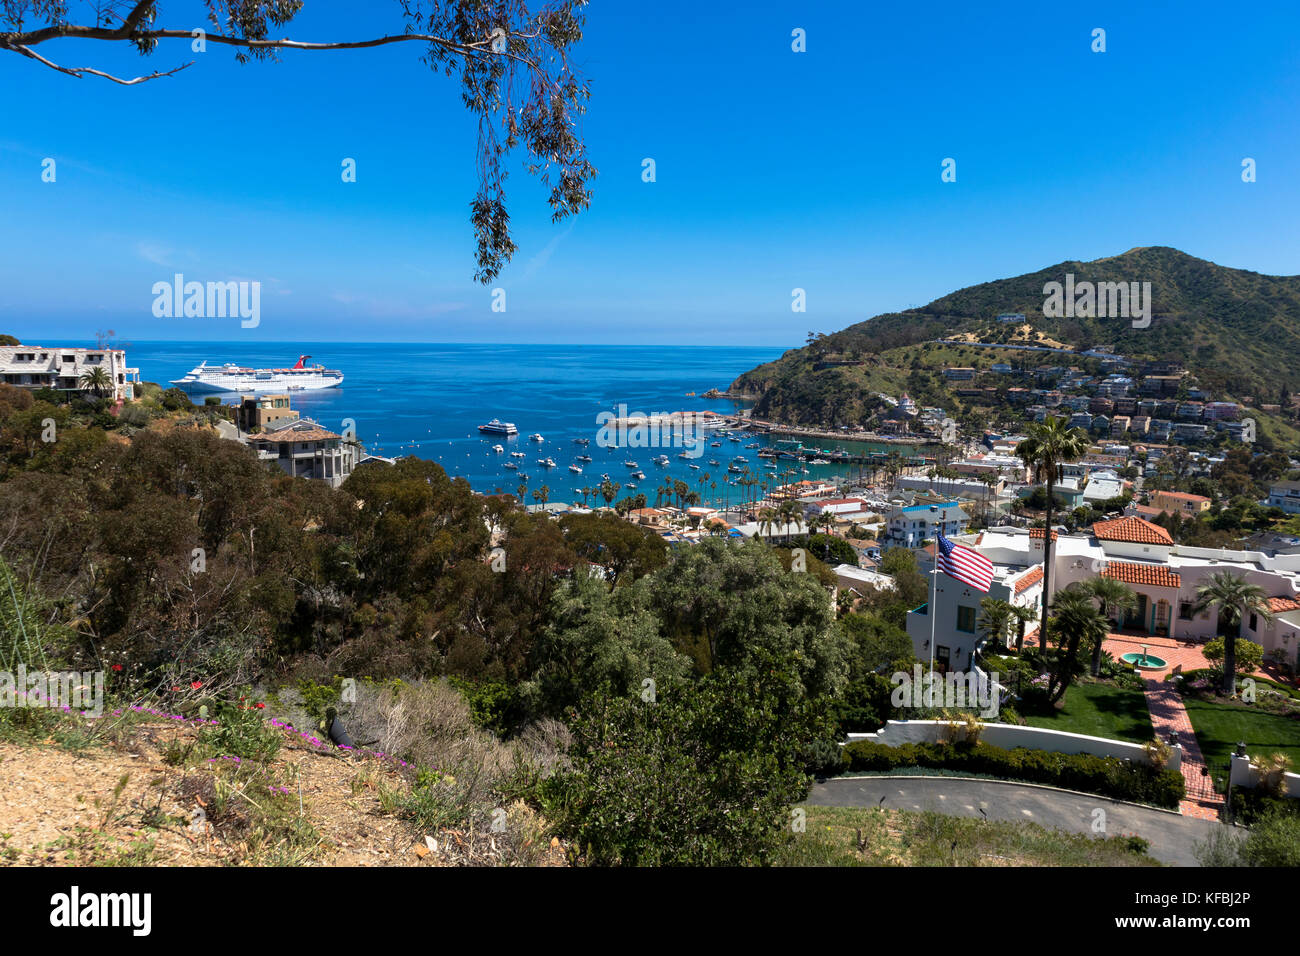 View over the boats anchored in Avalon Bay and the coastline on Santa Catalina Island California 2017 - Stock Image